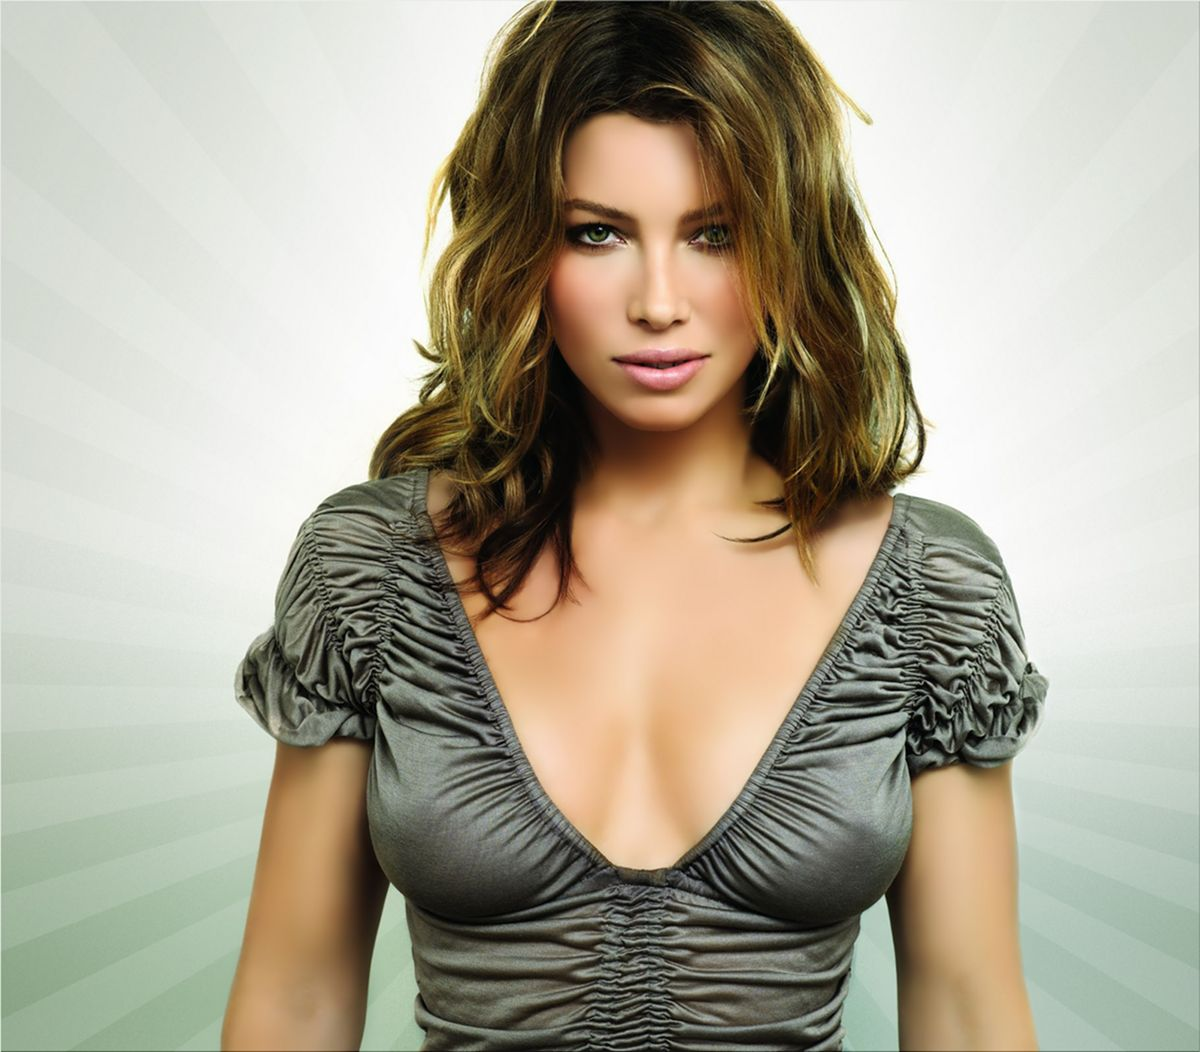 Jessica Biel turns 33 today - Lyles Movie Files Jessica Biel